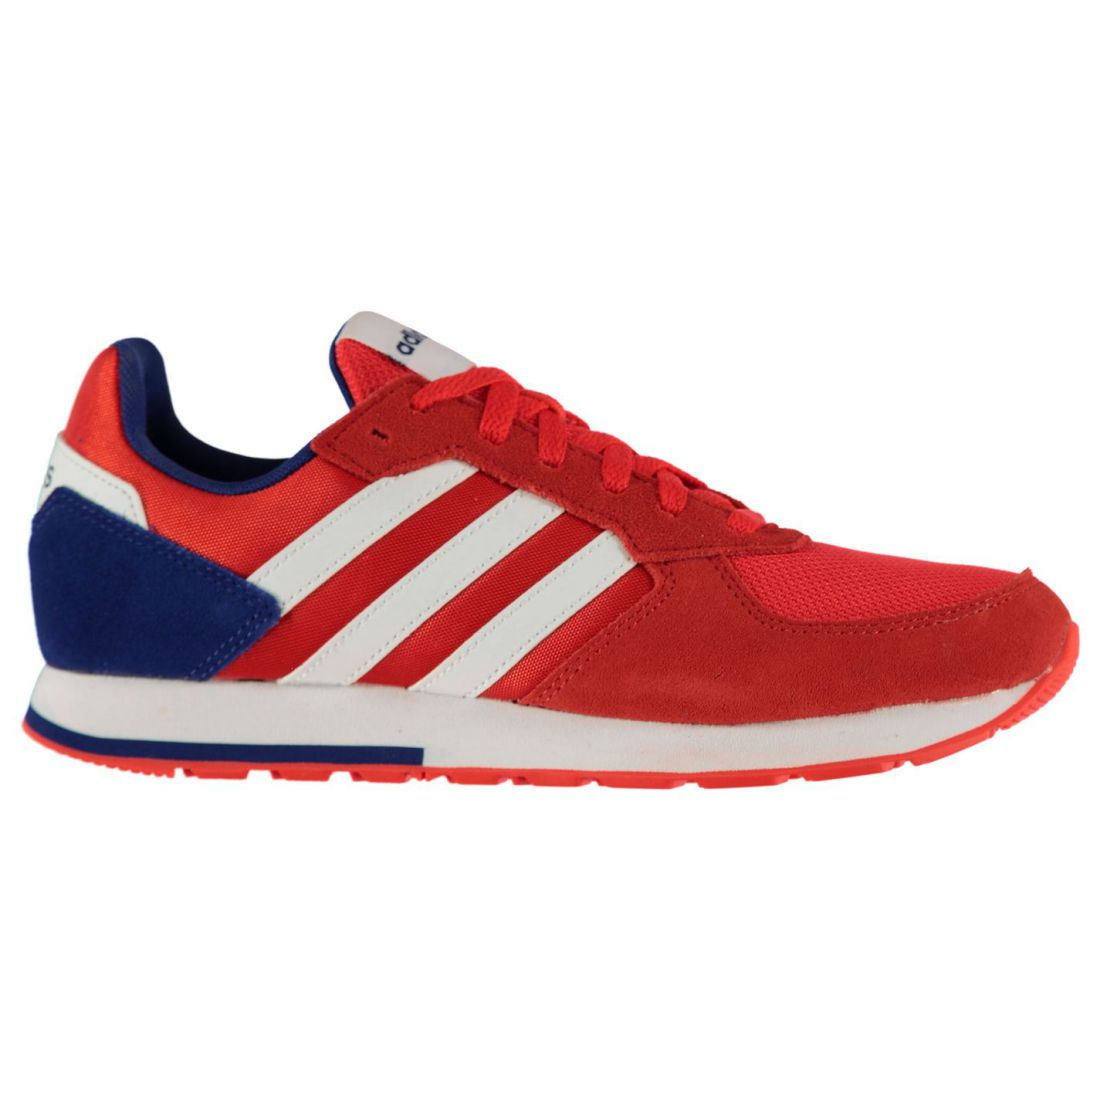 Adidas 8K Turnschuhe Mens Gents Runners Laces Fastened Mesh Upper Suede Stripe